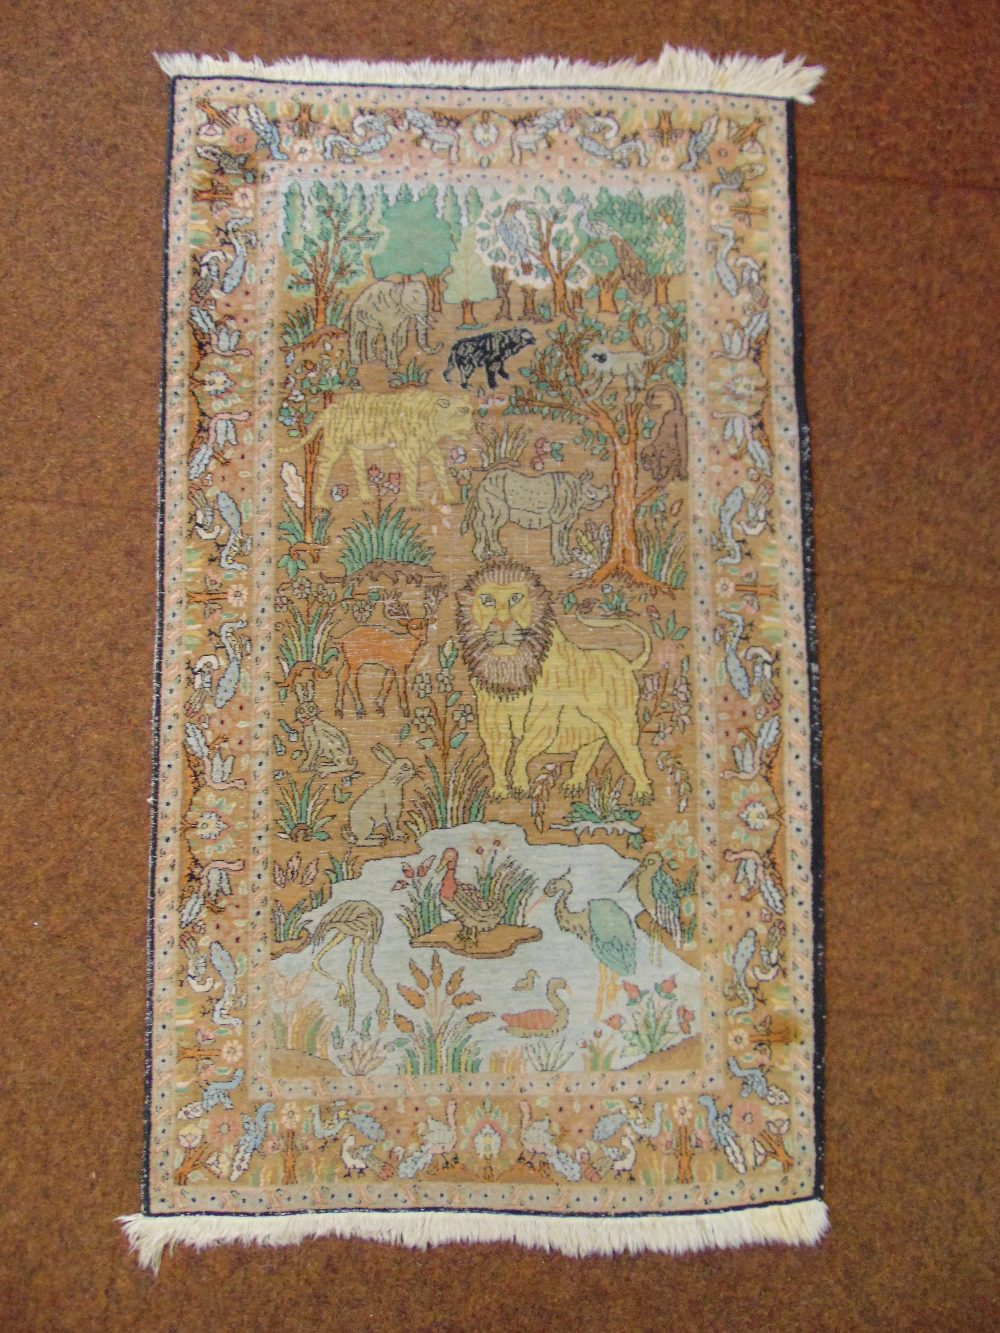 Lot 49 - A Persian carpet depicting stylised wild animals within a border of stylised birds, 131.5 x 76.5cm